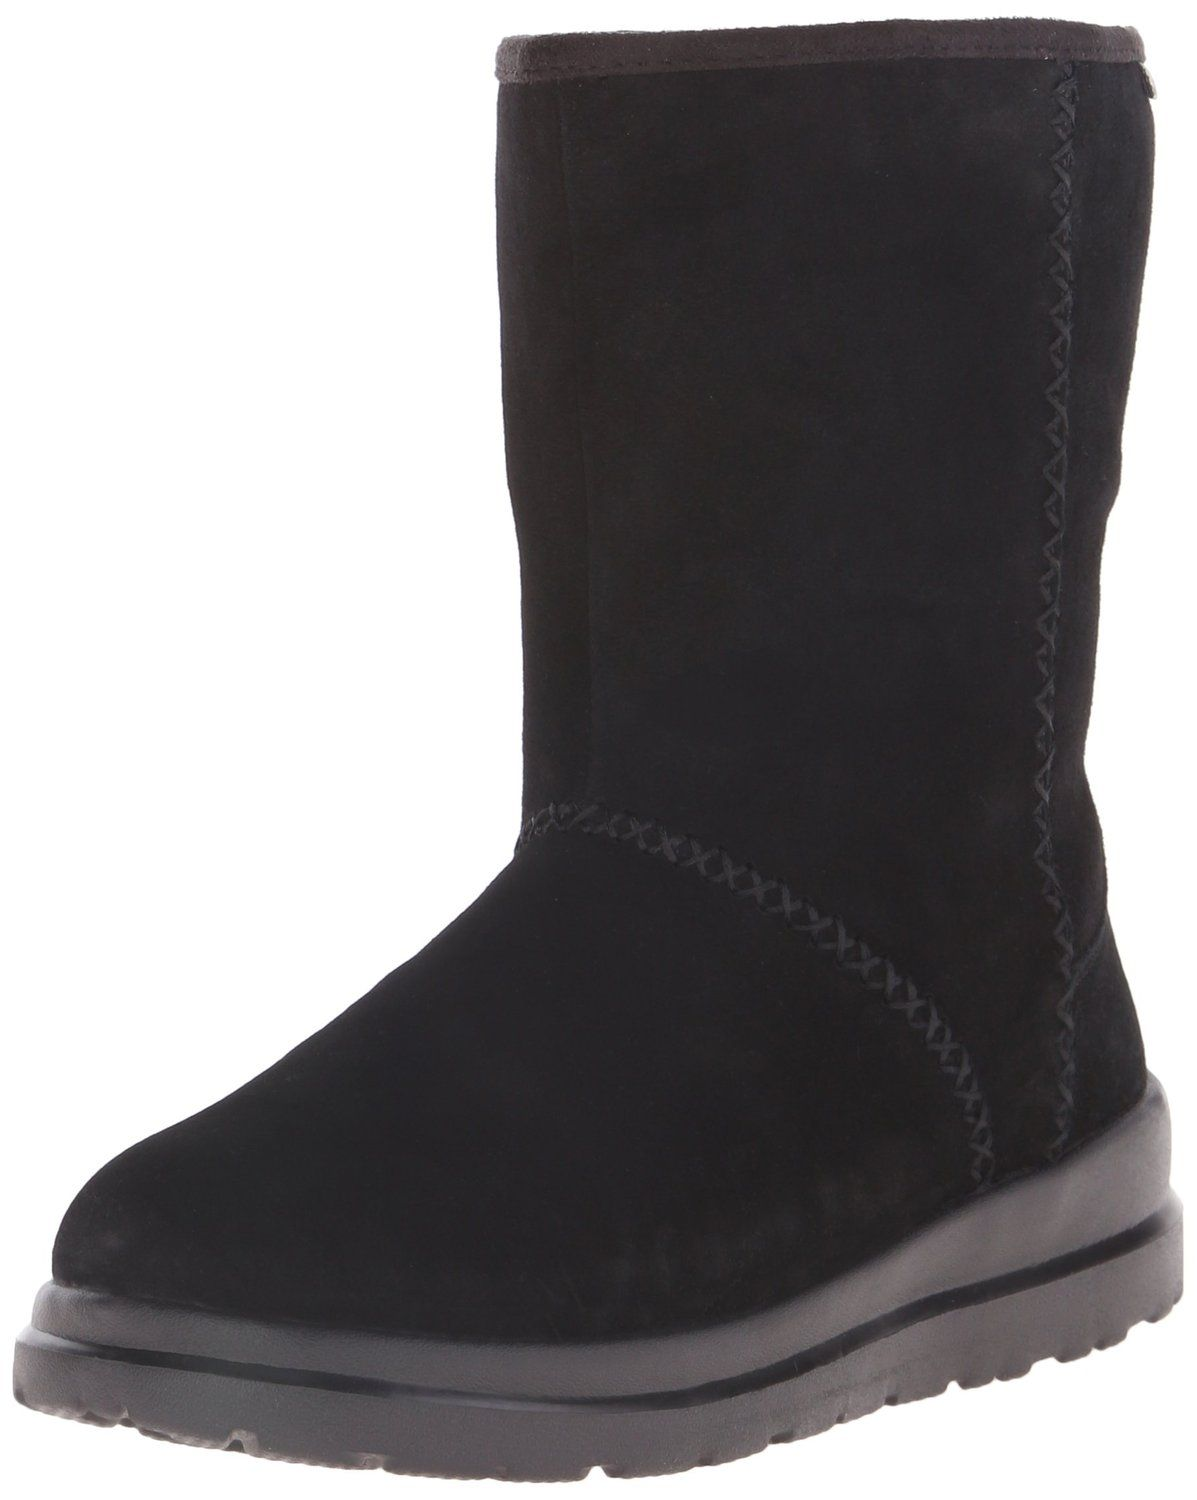 0bf2ce51ac81 Skechers Women s Cherish-Just Because Winter Boot   Additional details  found at the image link